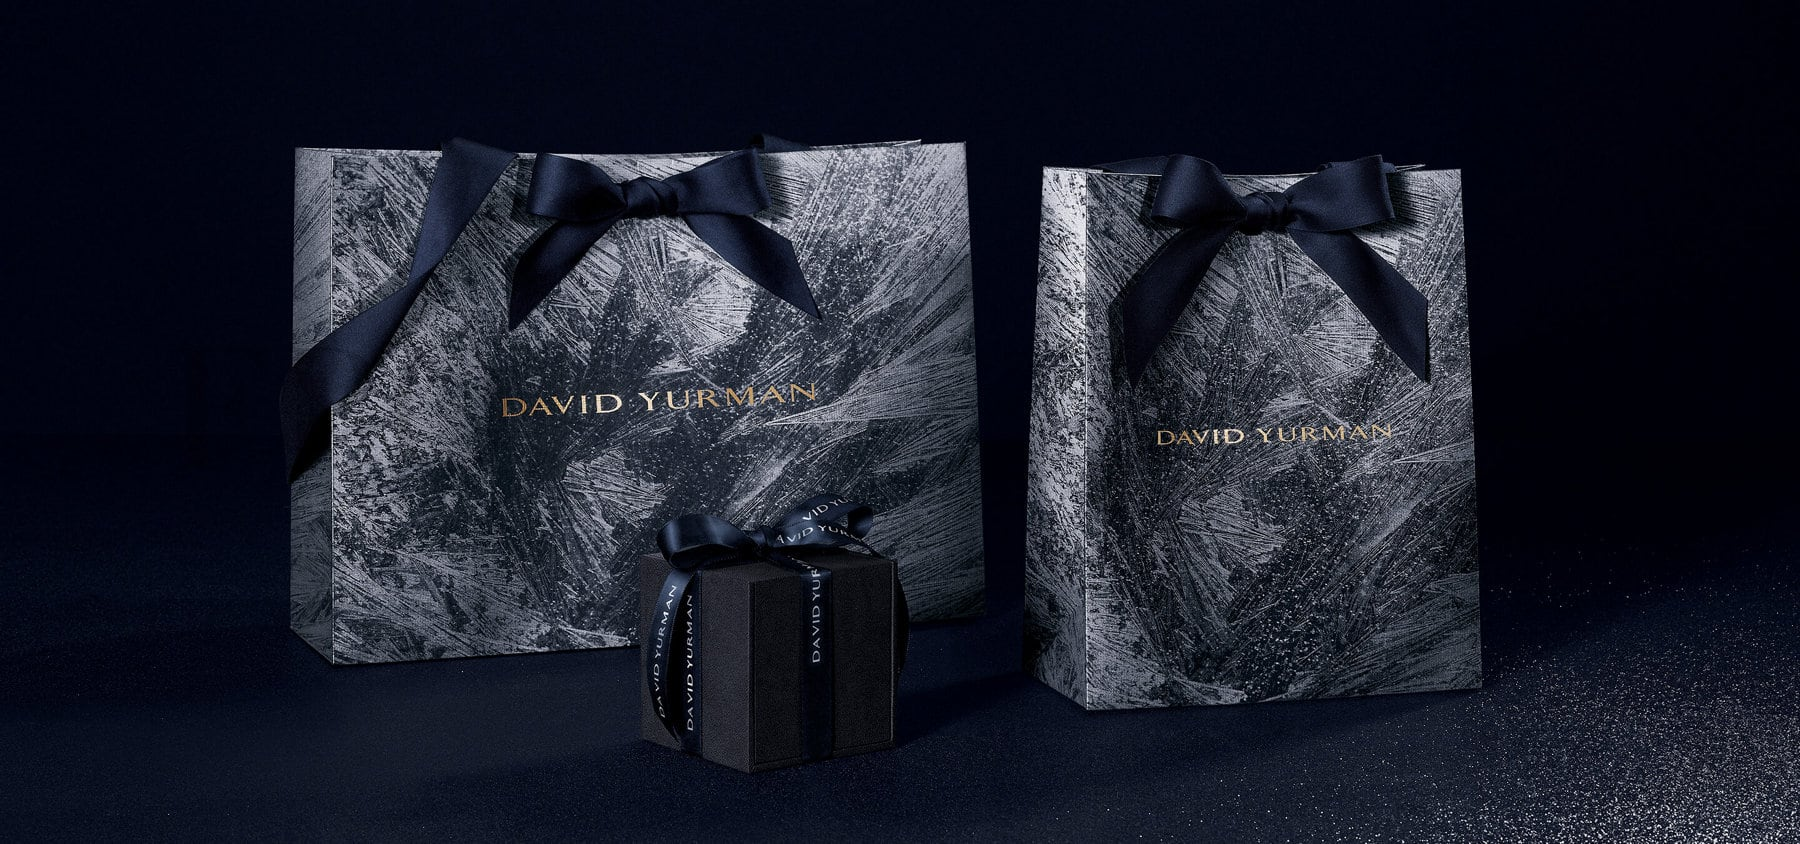 A color photo shows large and small David Yurman gift bags standing behind a David Yurman ring box on a glittery black surface. The gift bags feature navy-hued bows at the top and are covered with a silvery frost-inspired pattern on a dark grey background. The David Yurman logo is printed in gold in the center of each bag. The black ring box is wrapped with a black ribbon featuring the David Yurman logo printed in white.